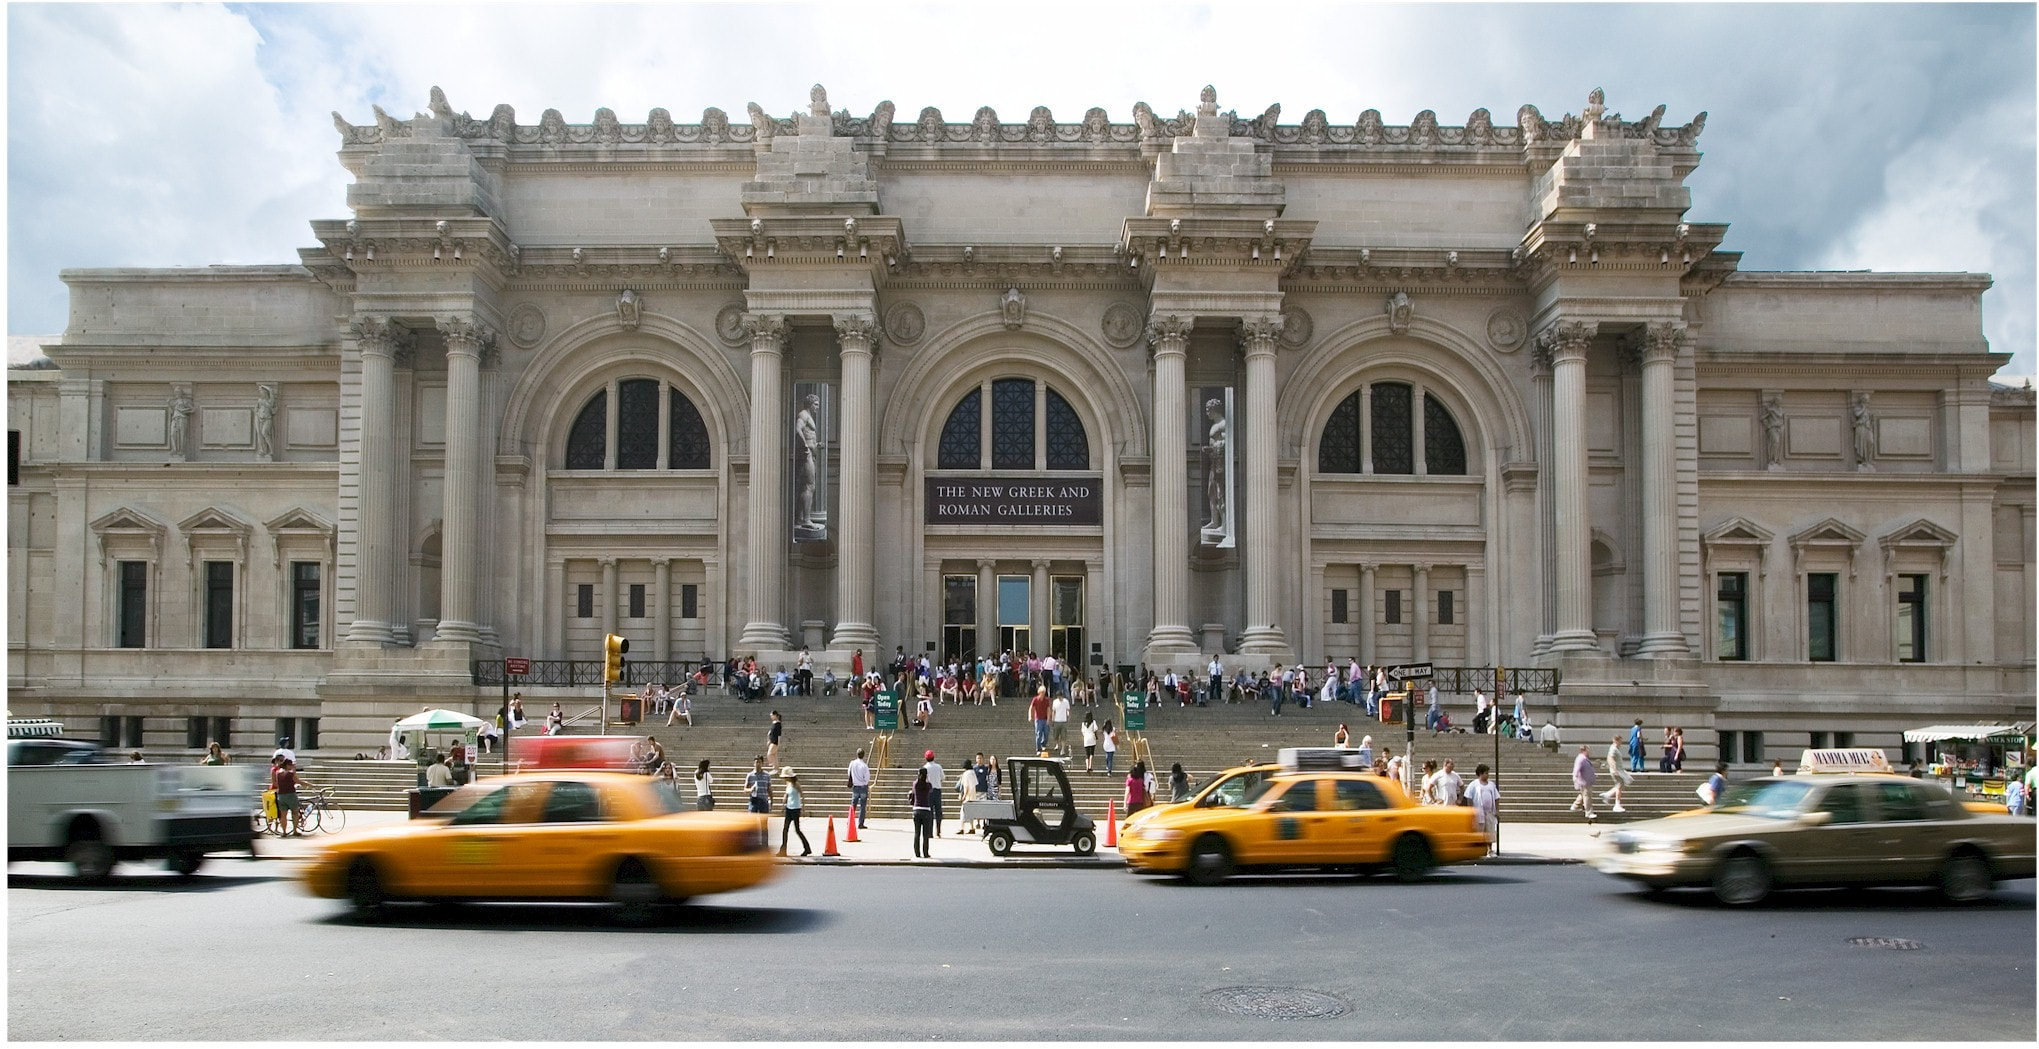 The metropolitan museum of art new york google image for Metropolitan museum of art in new york